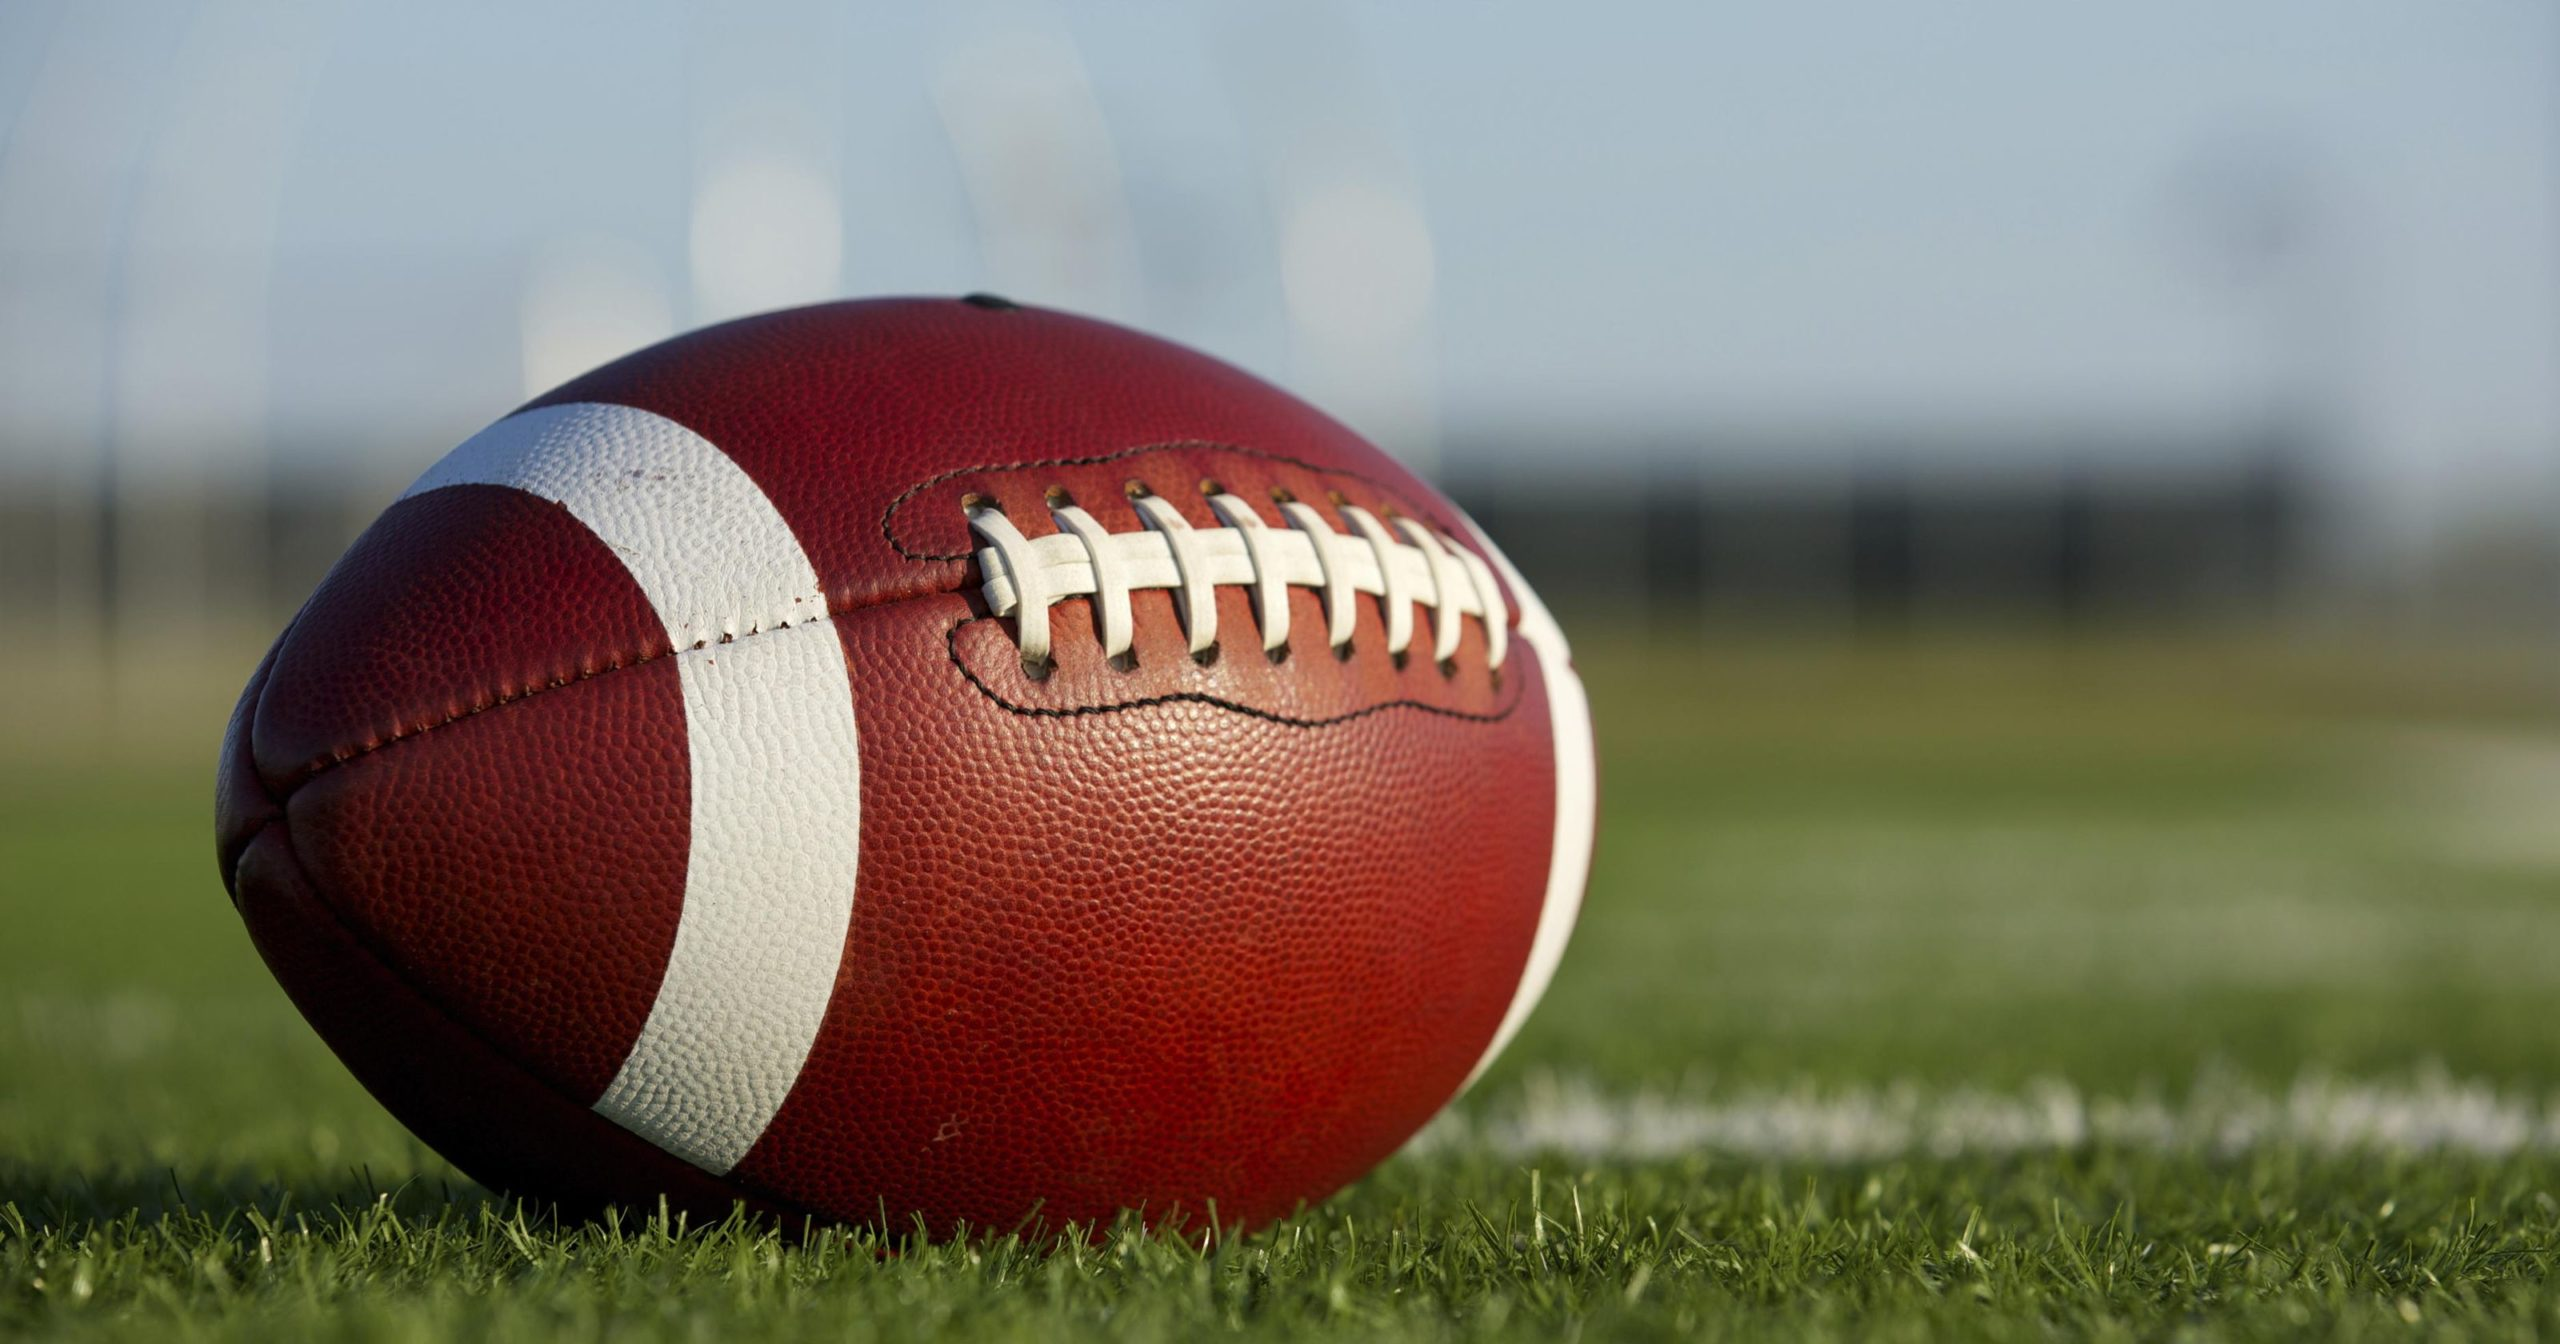 Sports News for Sunday October 22, 2017